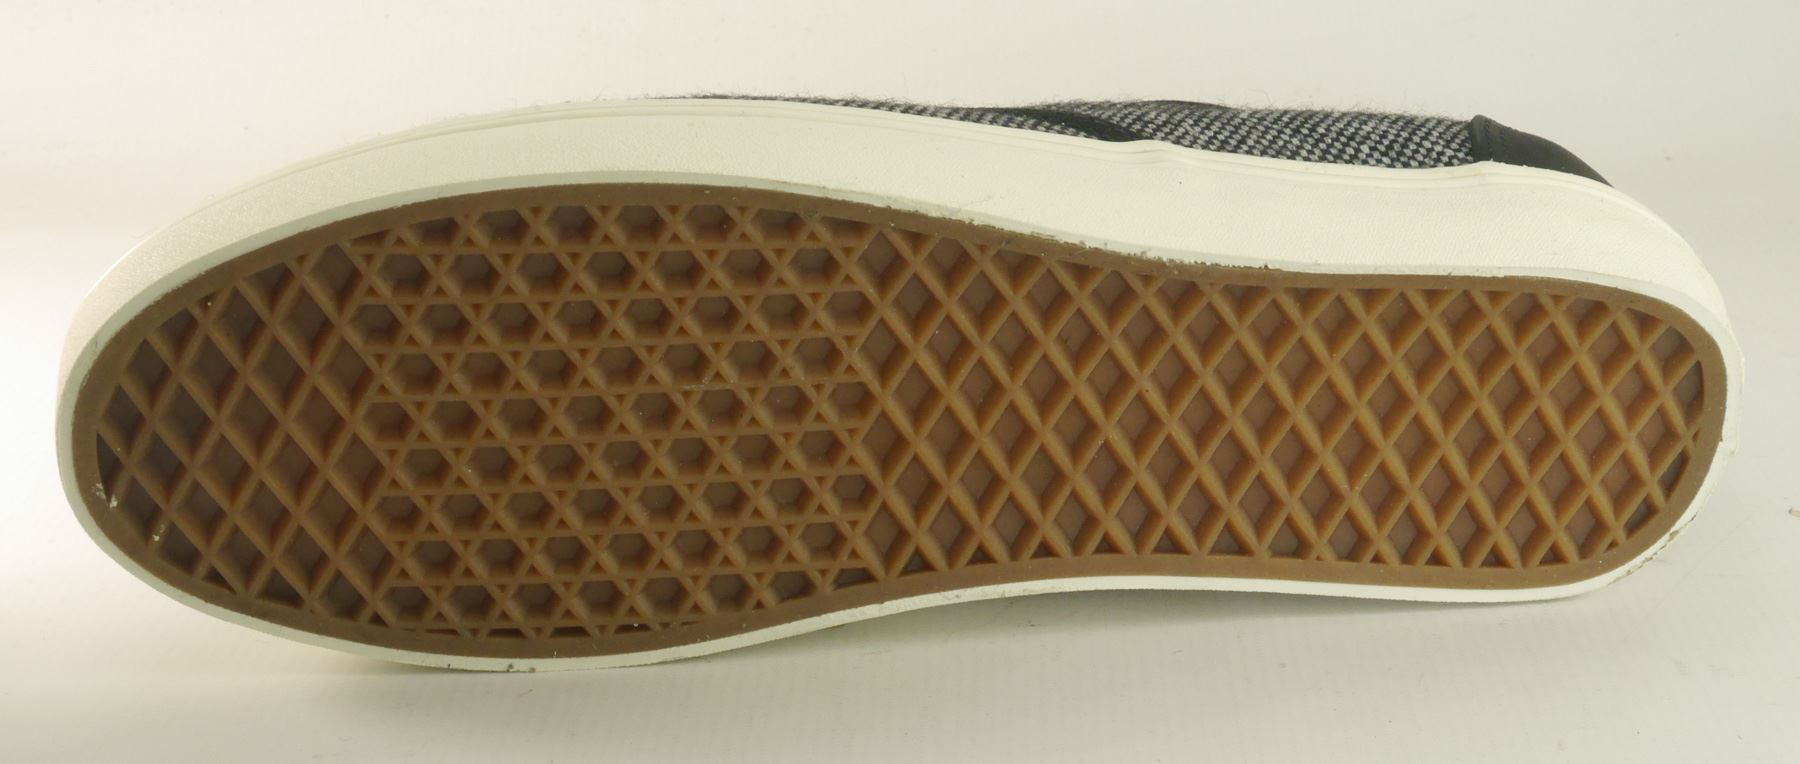 64782cf5236721 Vans are an adventure sport and urban lifestyle brand that specialise in  extreme sports styles for the street. The global skate culture adopted Vans  shoe as ...